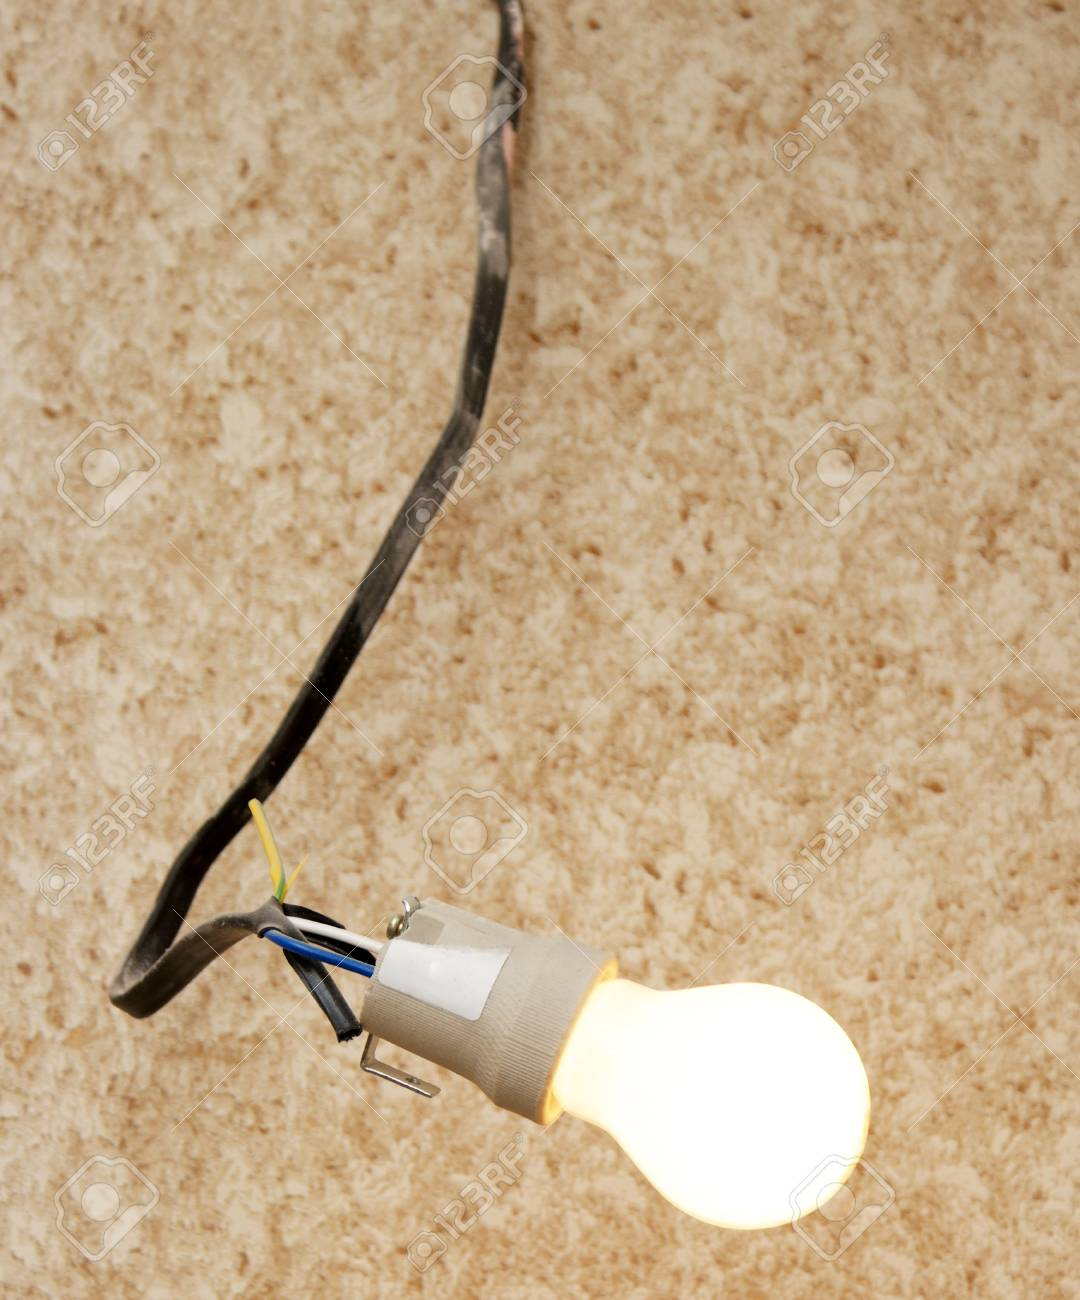 Shining electric bulb against a wall Stock Photo - 6536901